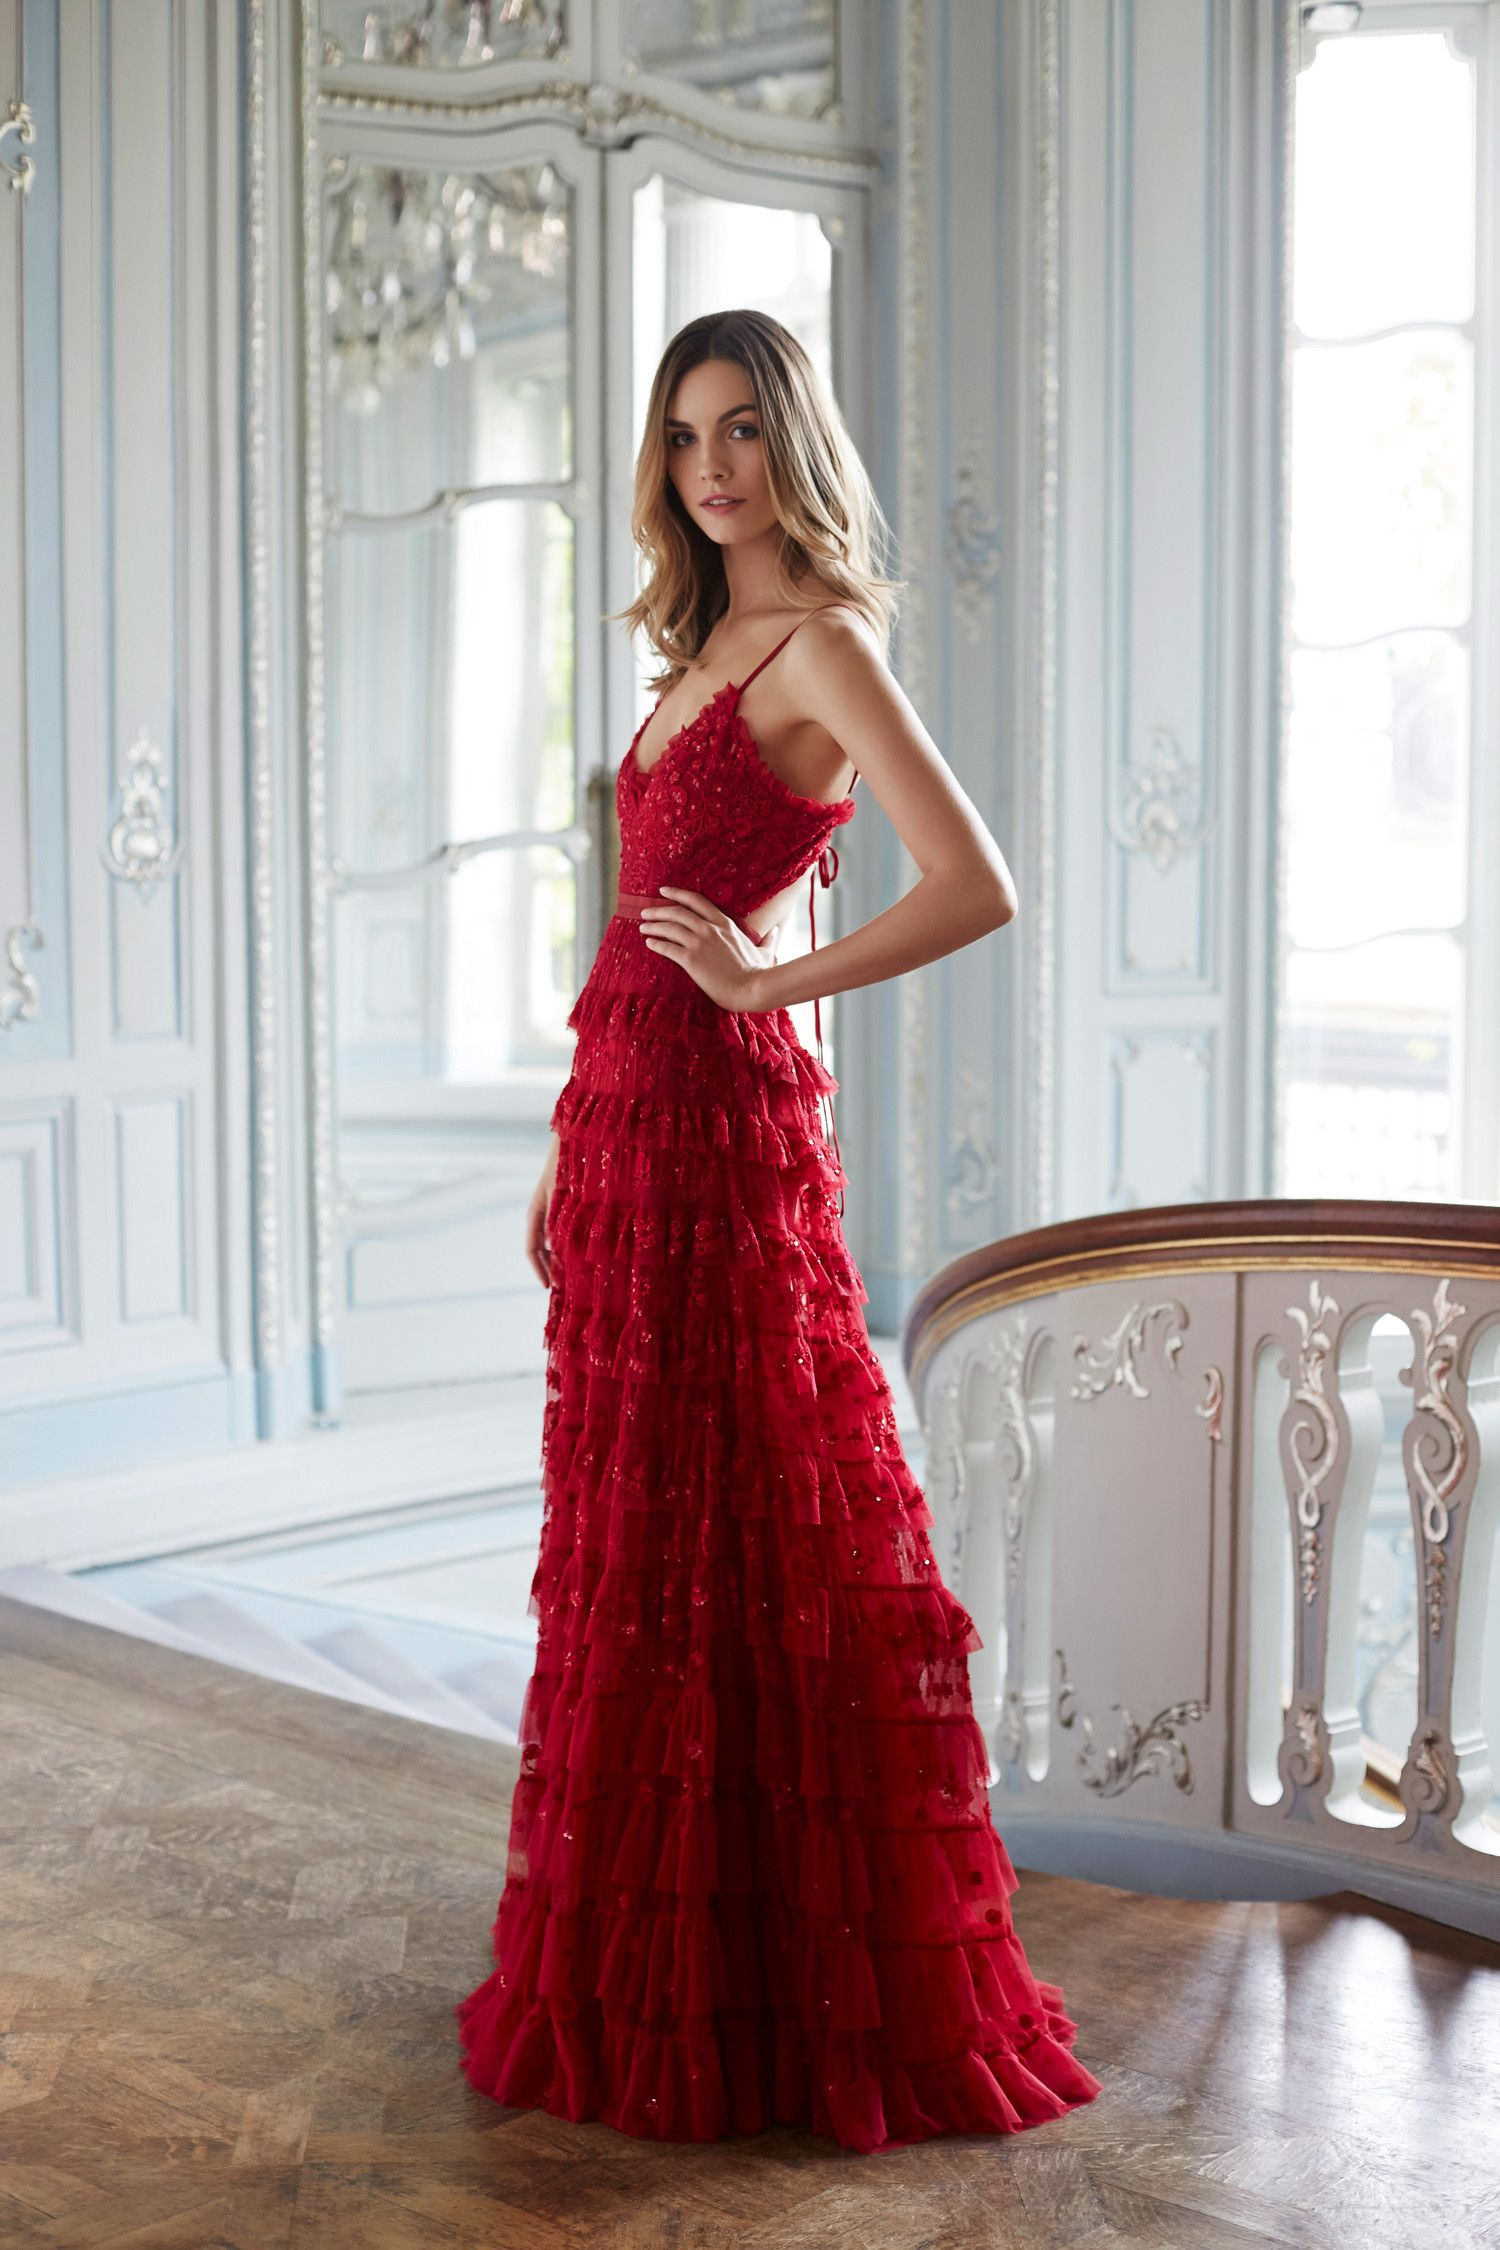 red dress outfit for wedding